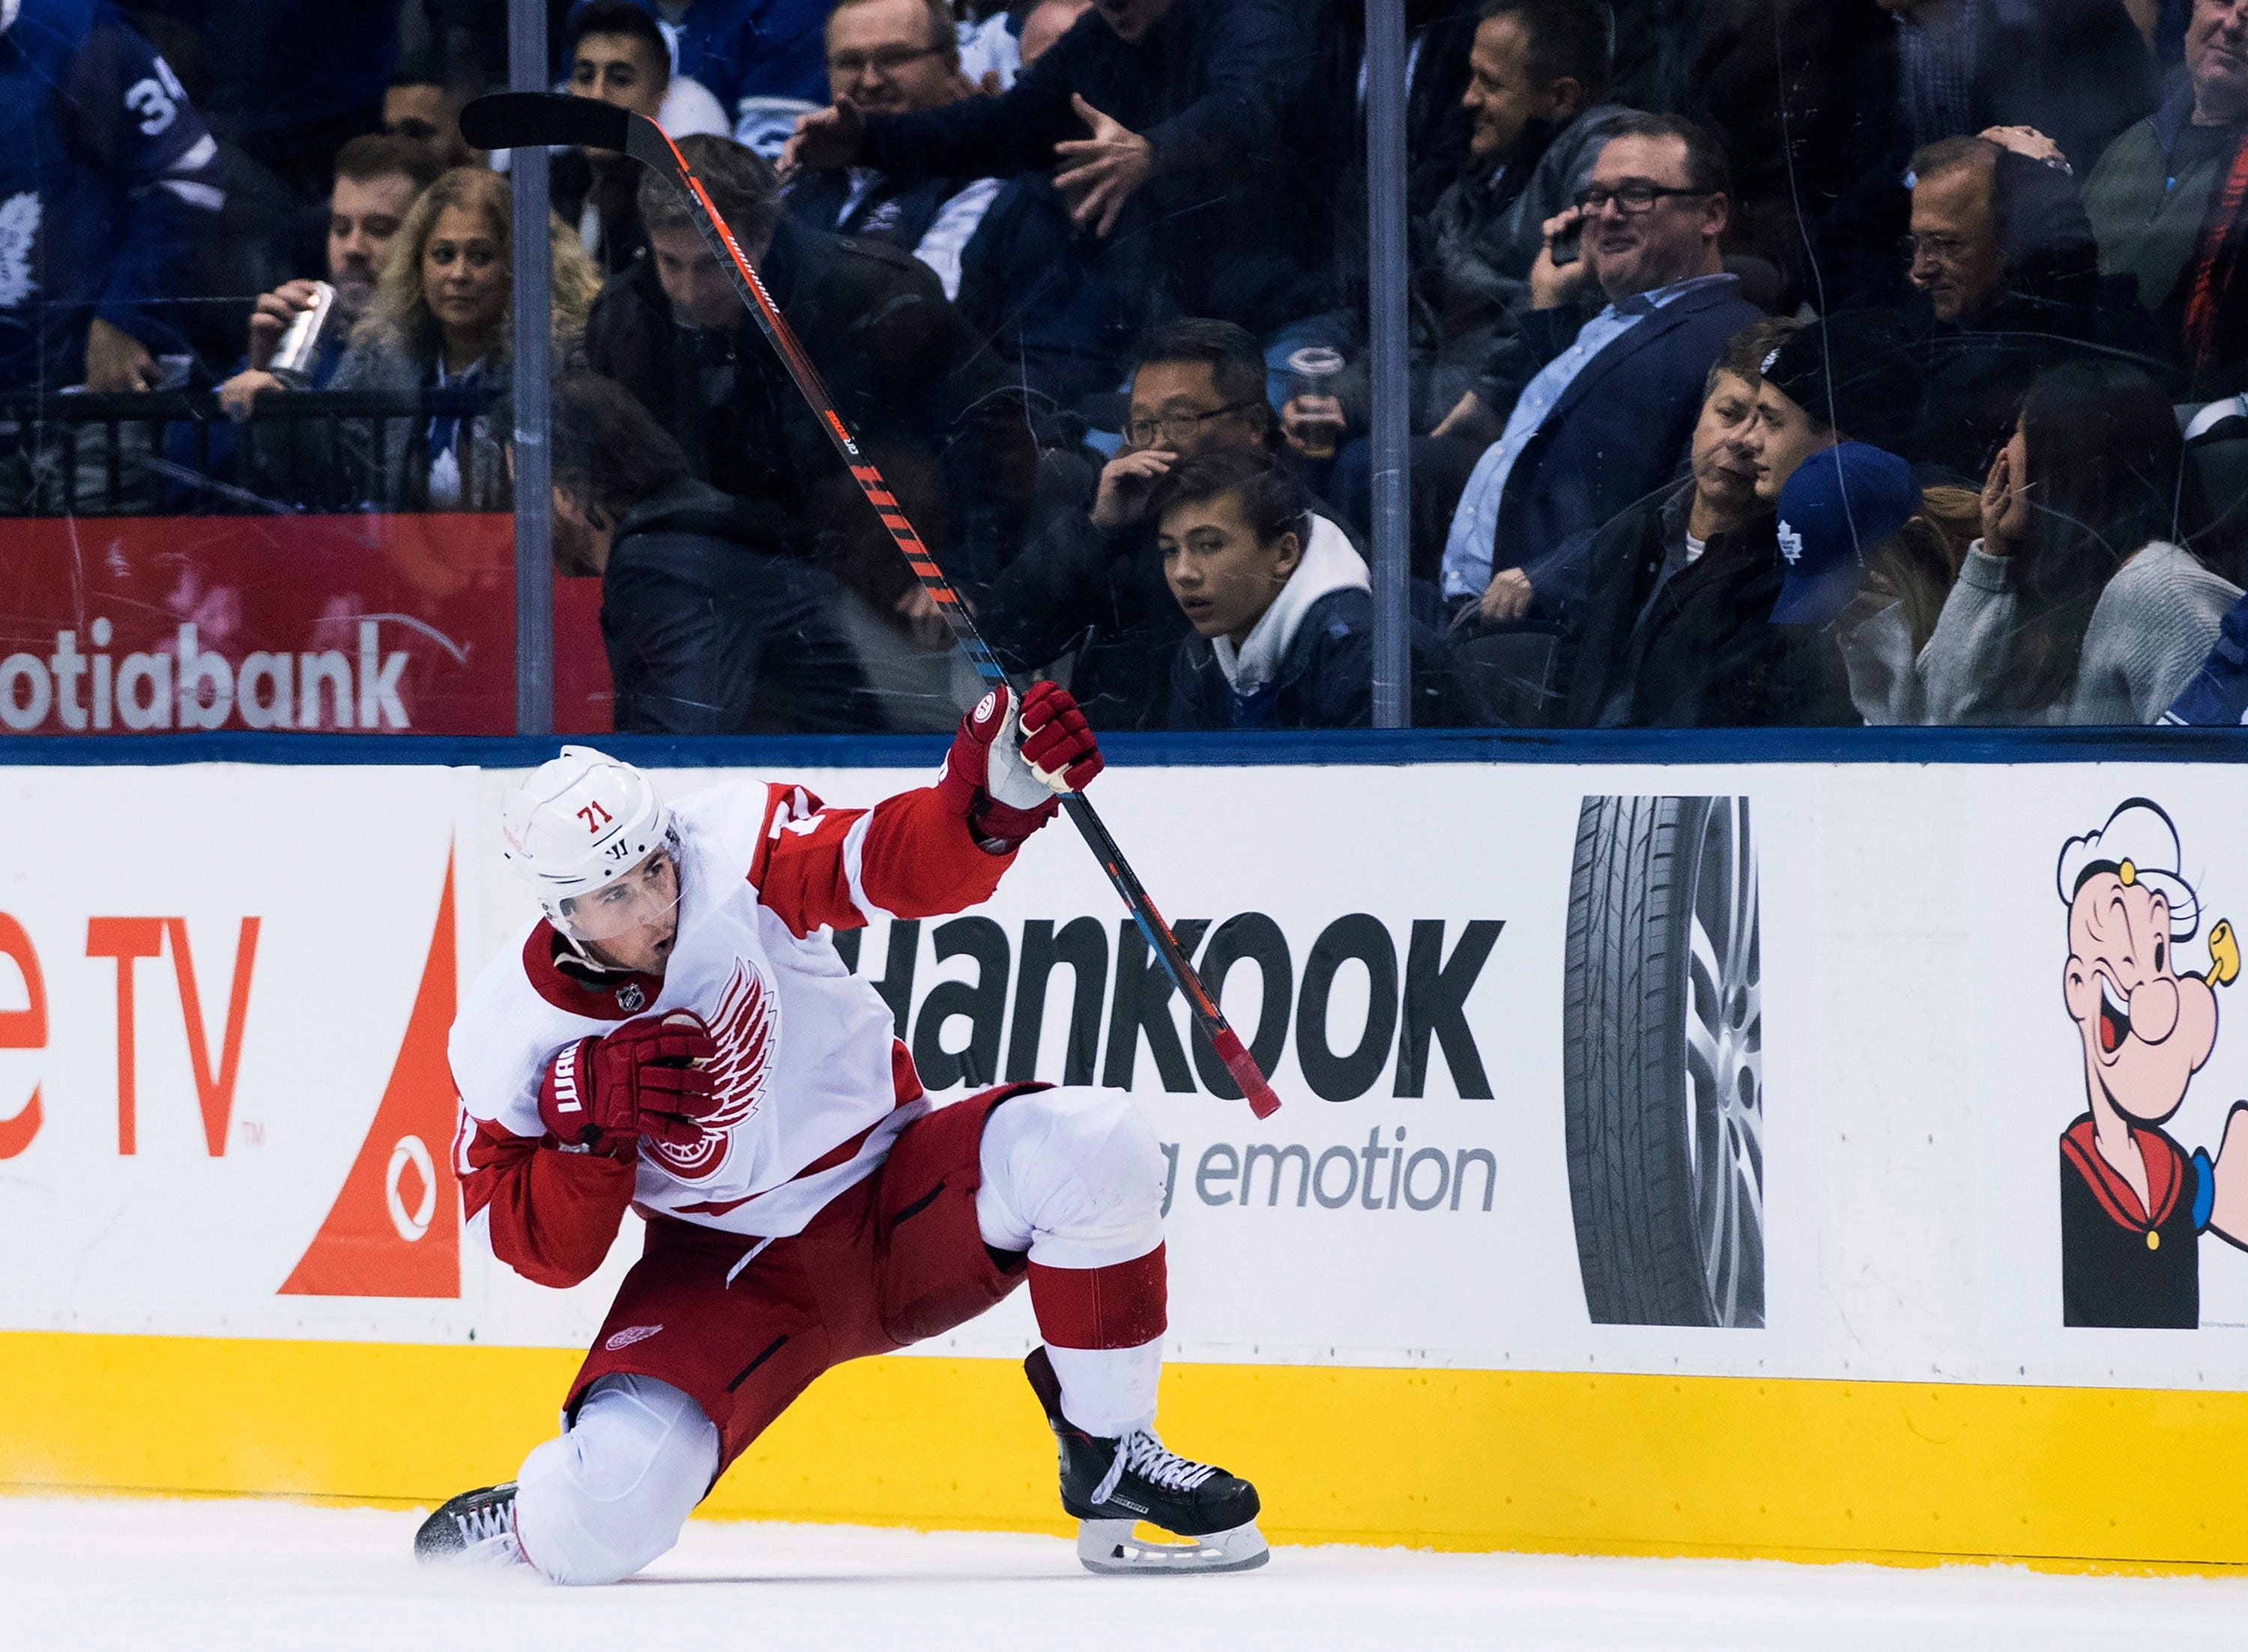 Dylan Larkin scores in OT, Red Wings edge Maple Leafs 5-4